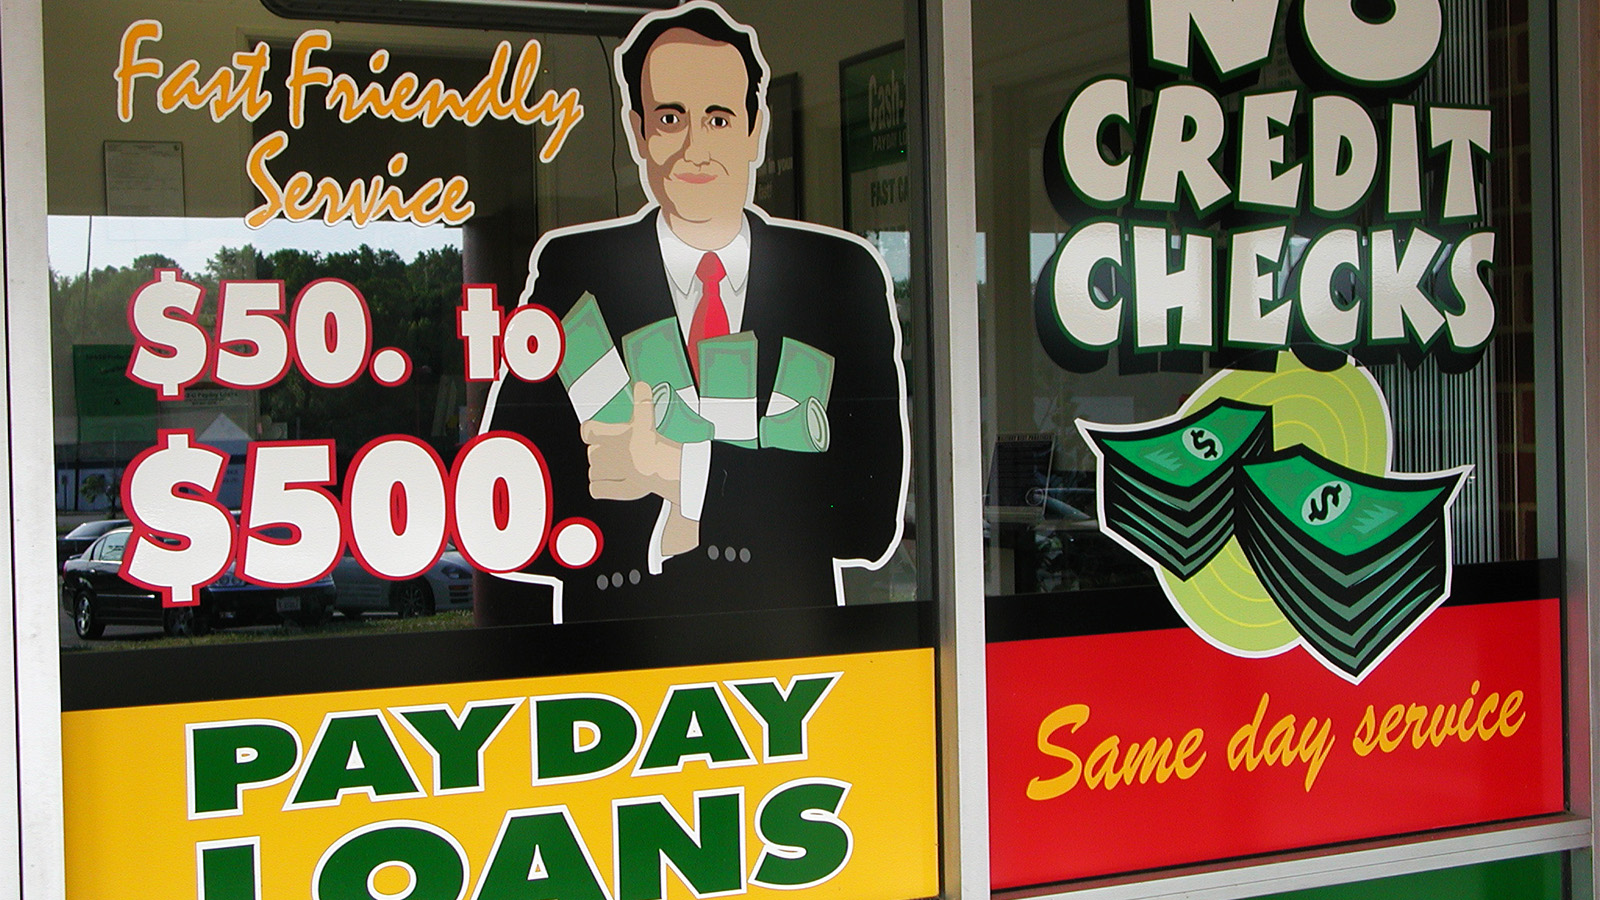 A payday loan location in Henrico County, Va. Photo by Taber Andrew Bain/Creative Commons